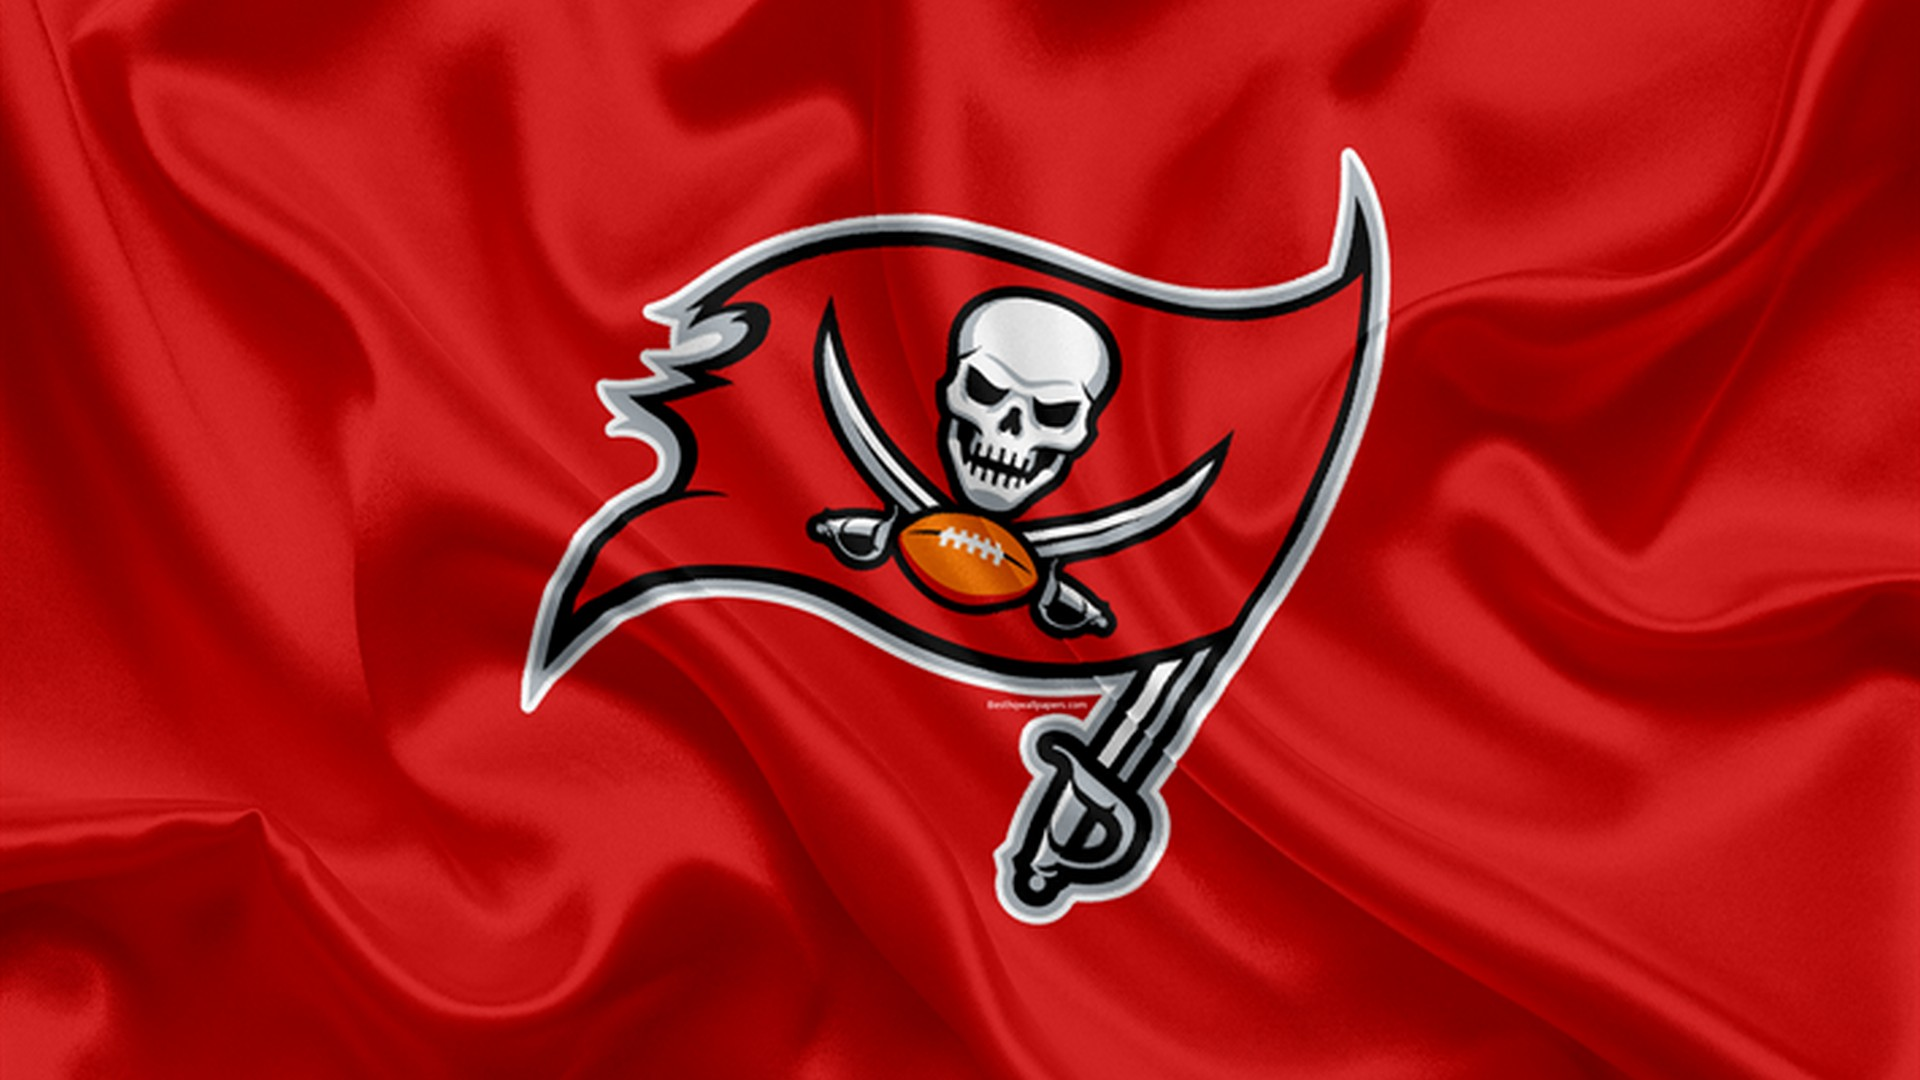 Tampa Bay Buccaneers For Desktop Wallpaper With High Resolution Tampa Bay Buccaneers Desktop 1920x1080 Download Hd Wallpaper Wallpapertip